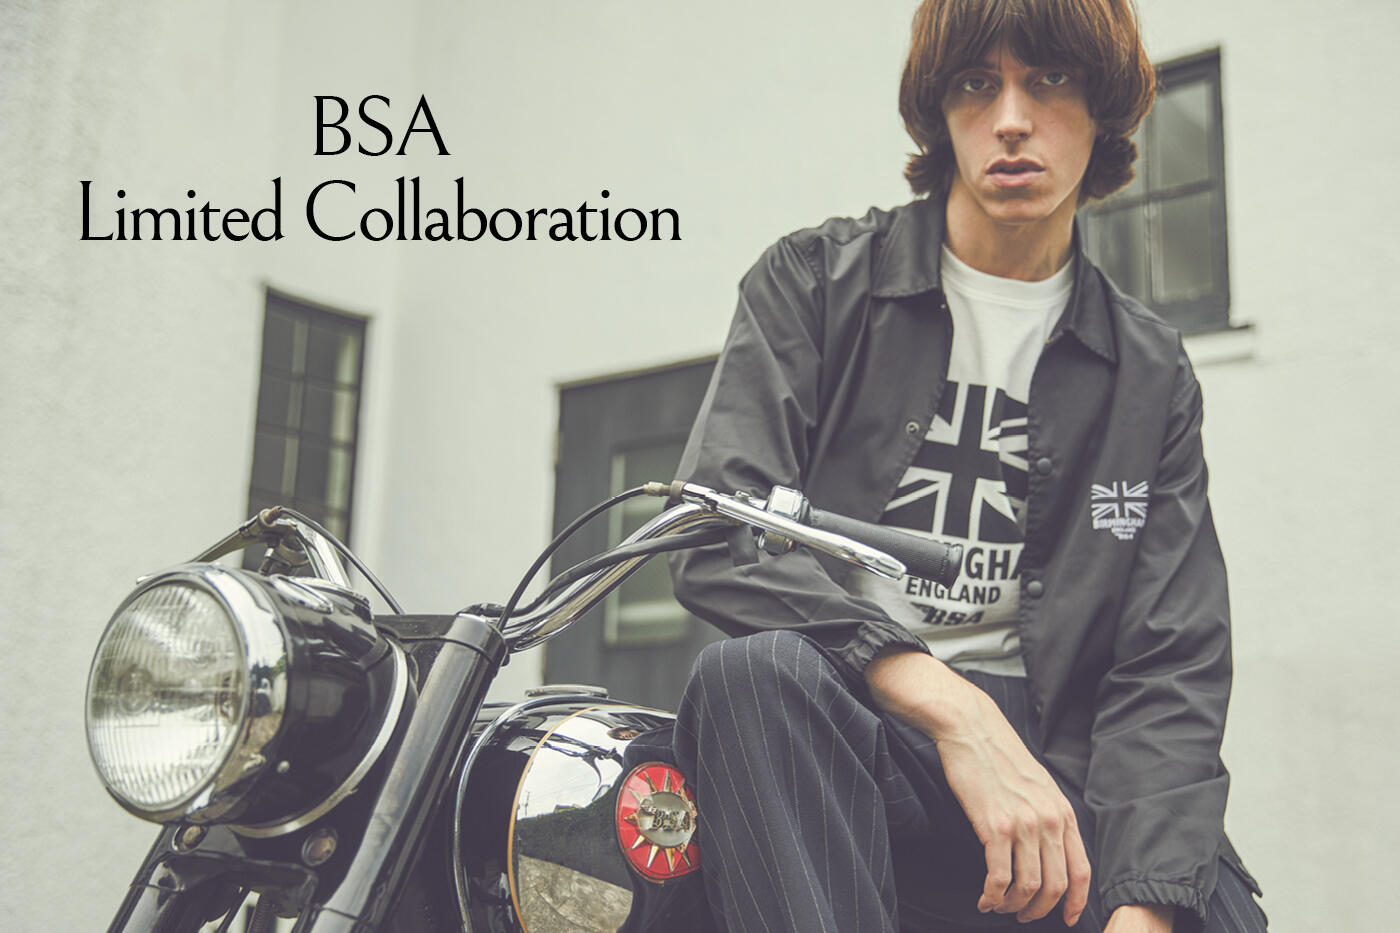 BSA Limited Collaboration